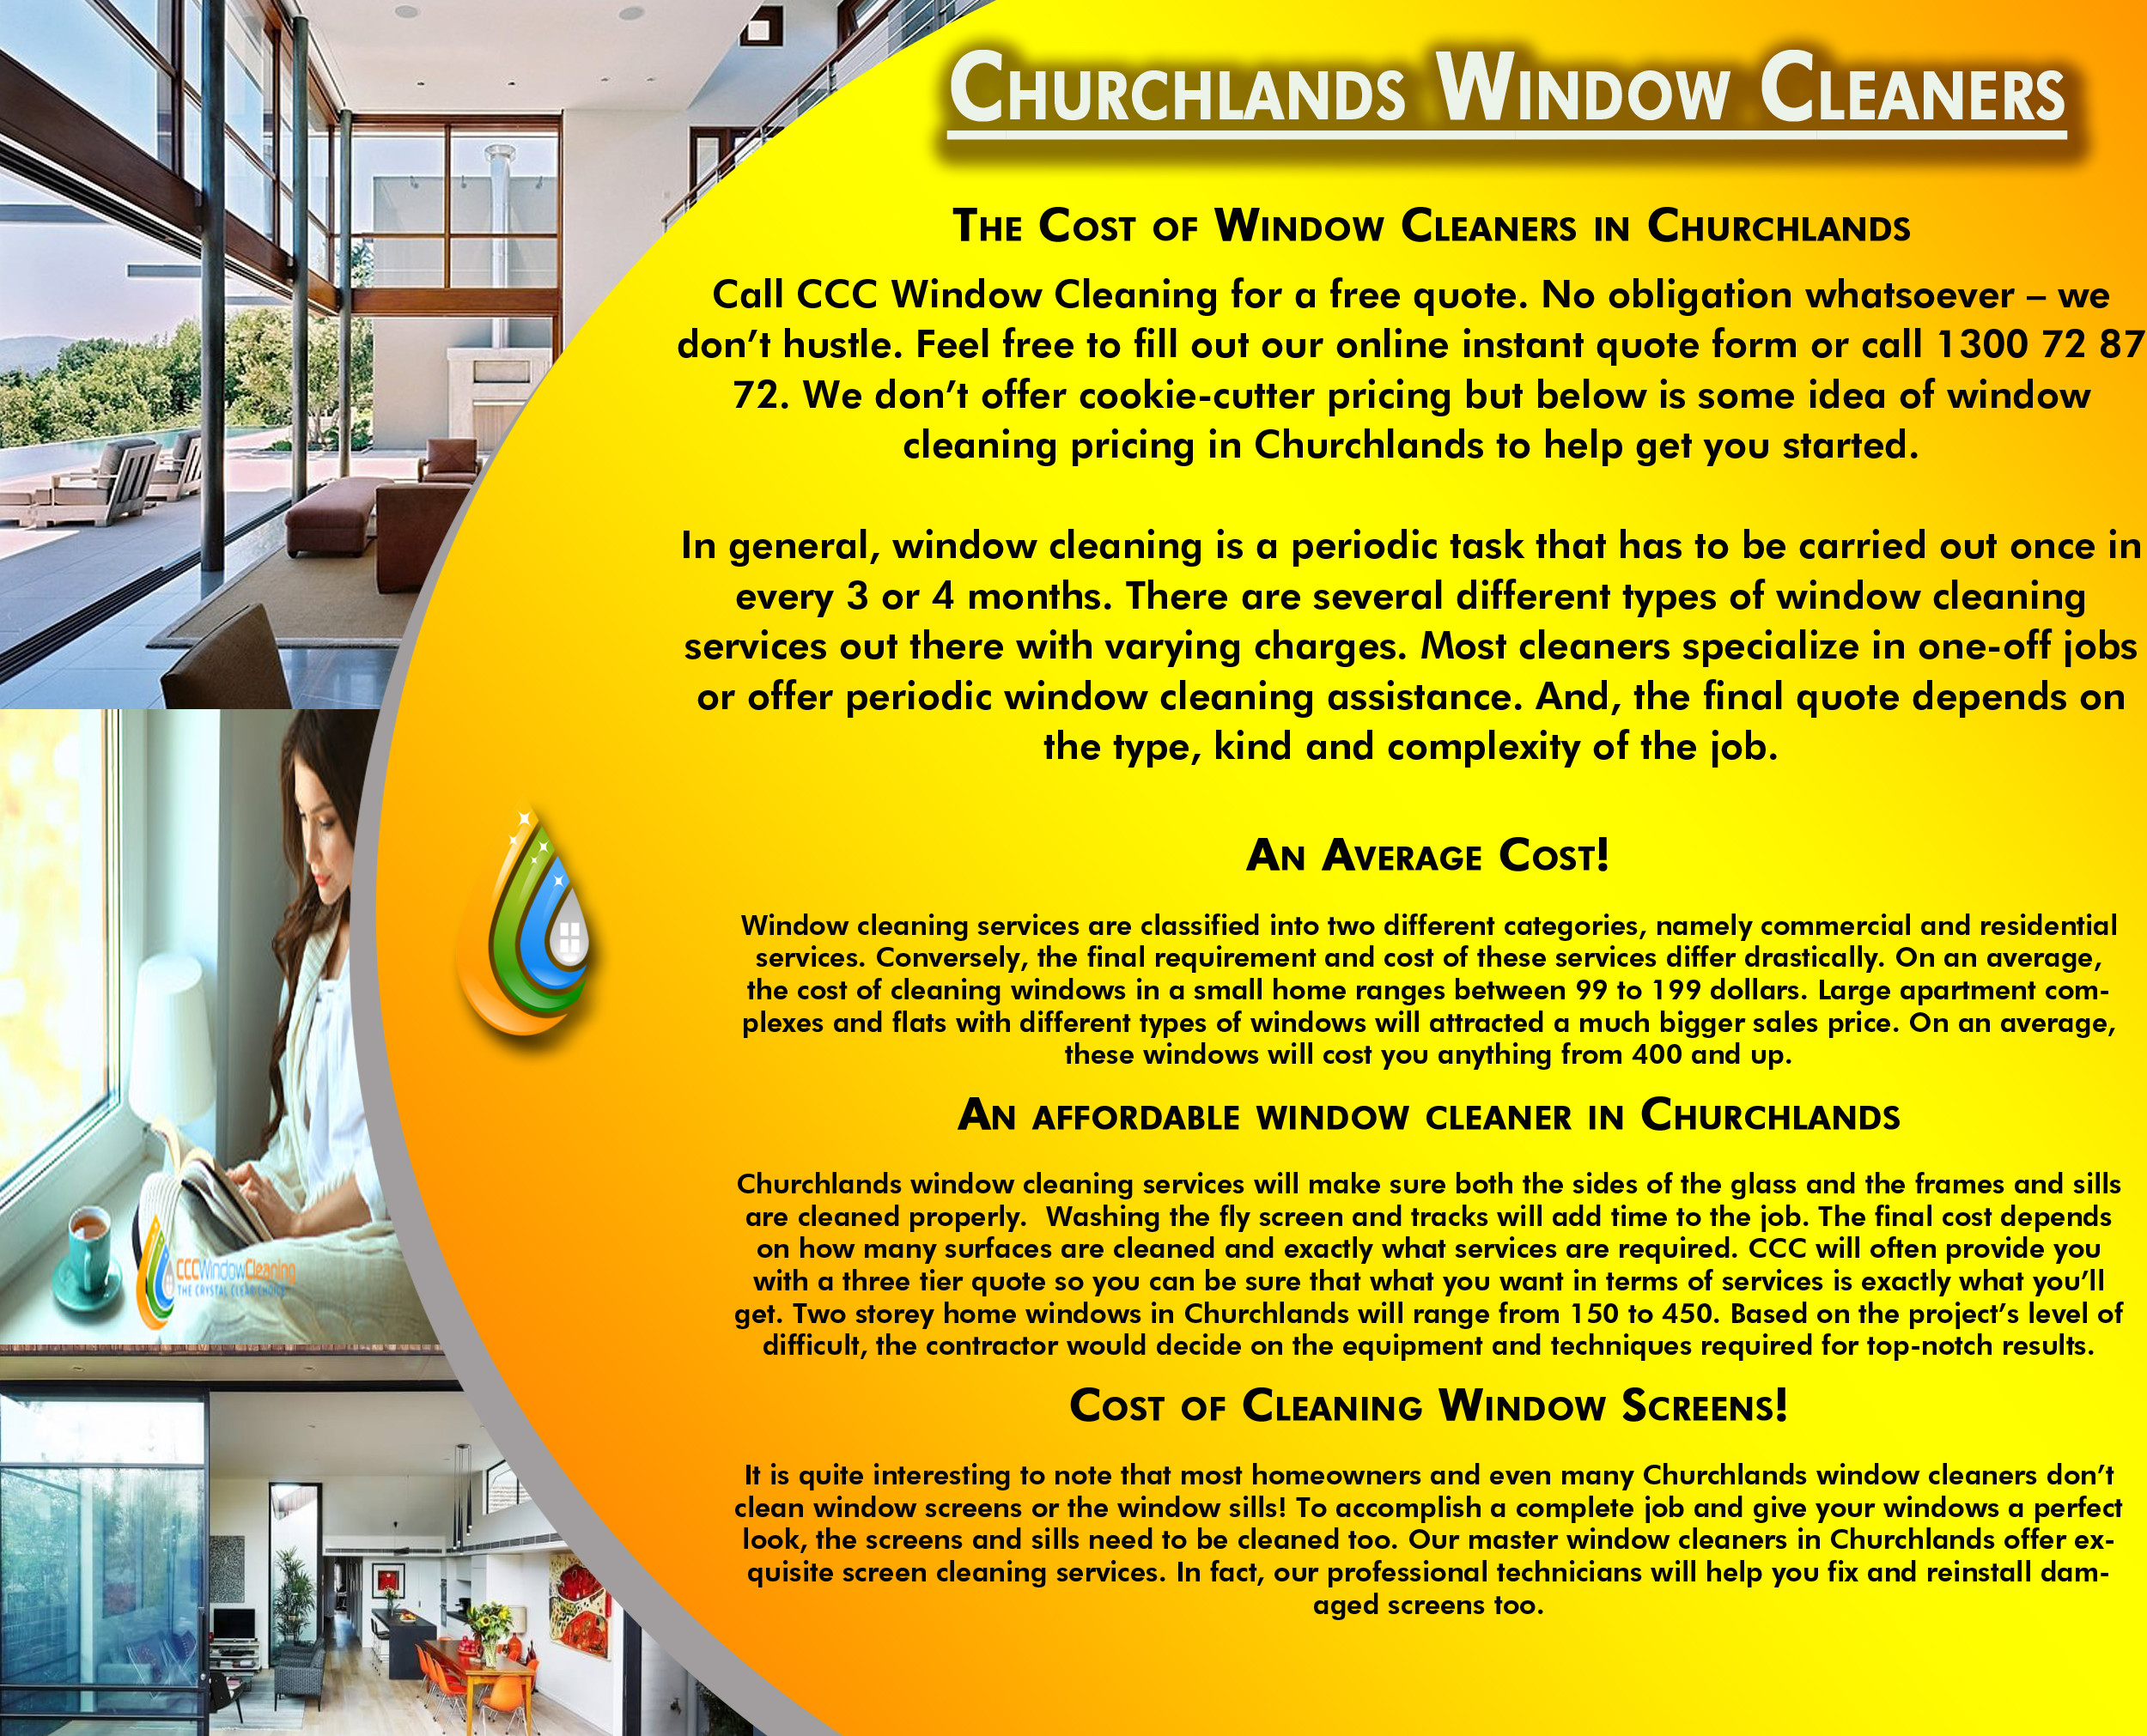 churchlands window cleaners ccc window cleaning churchlands